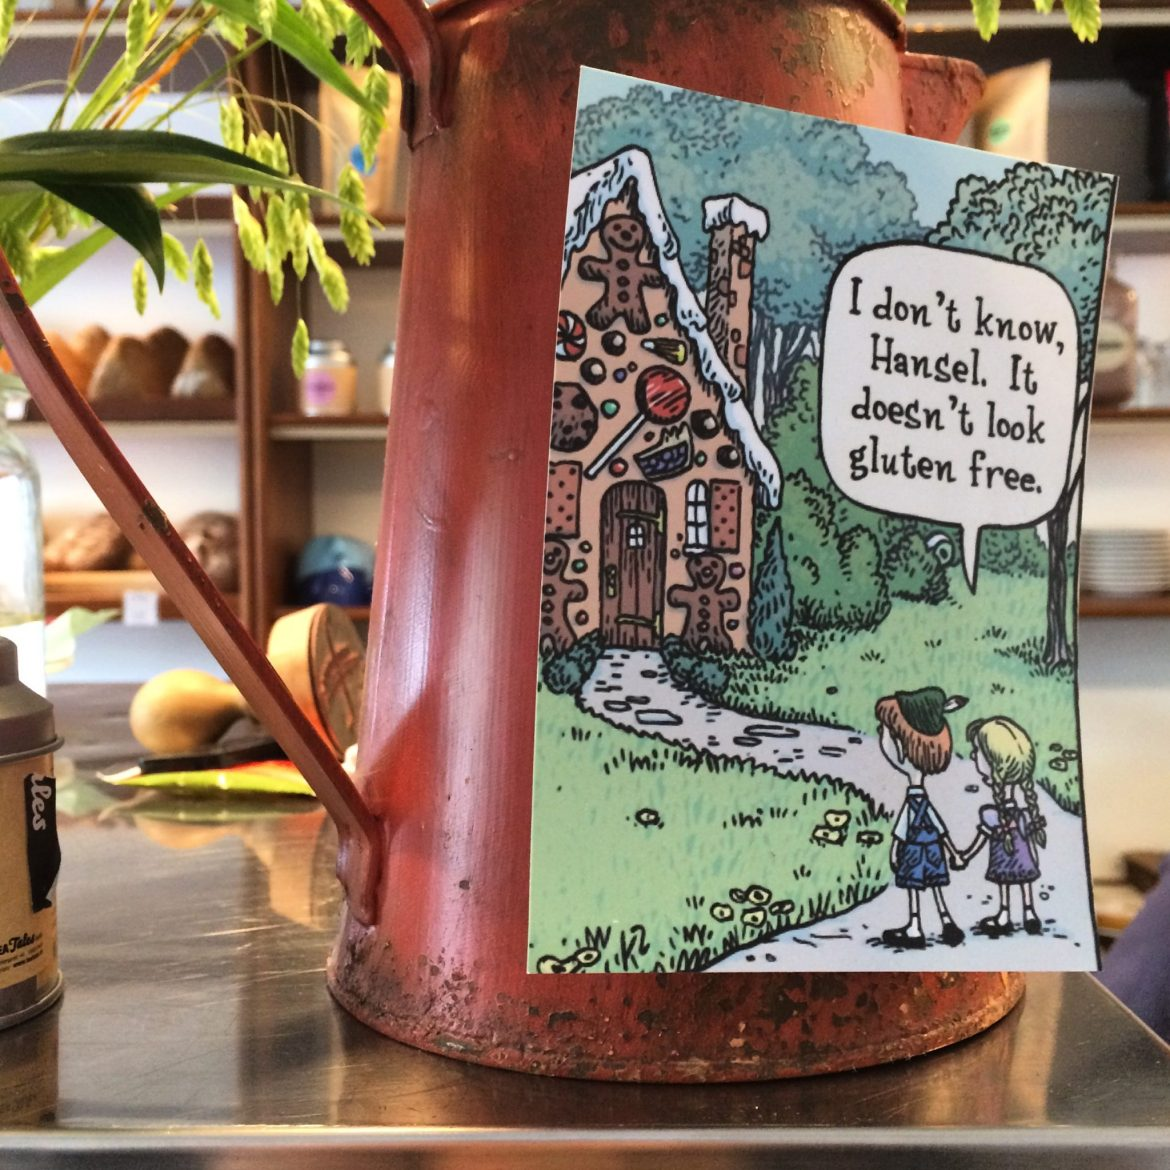 Postcard stuck to a copper jug